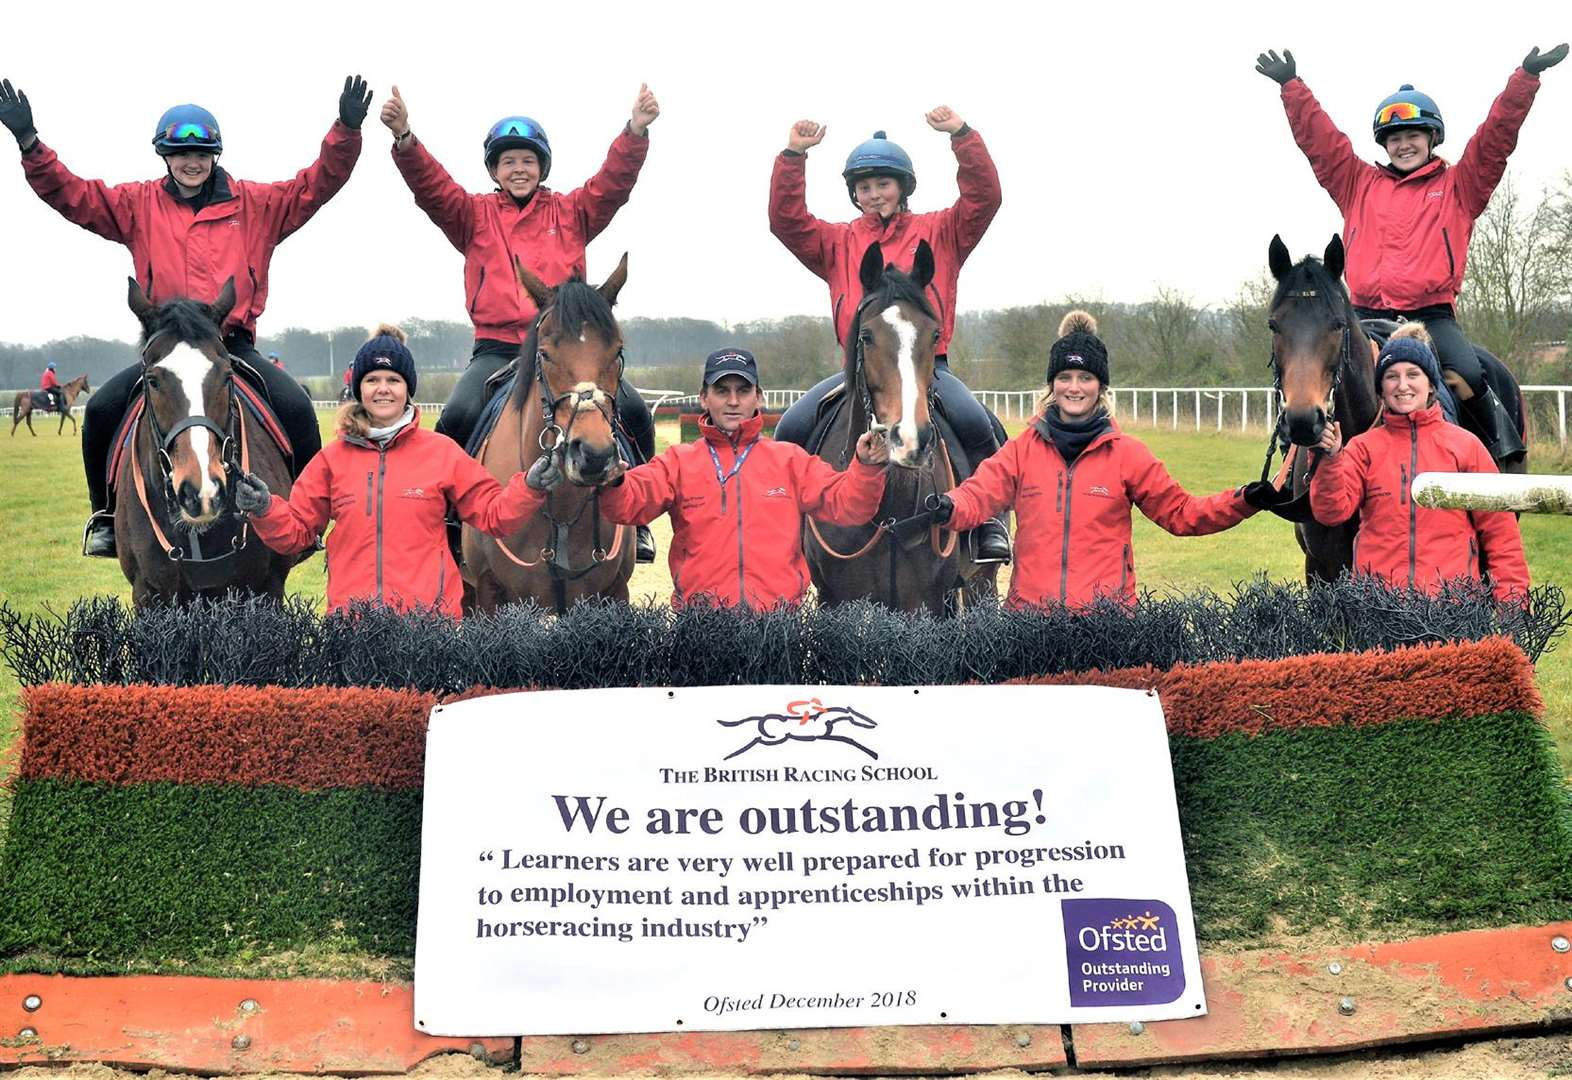 Town's racing school is an Ofsted favourite